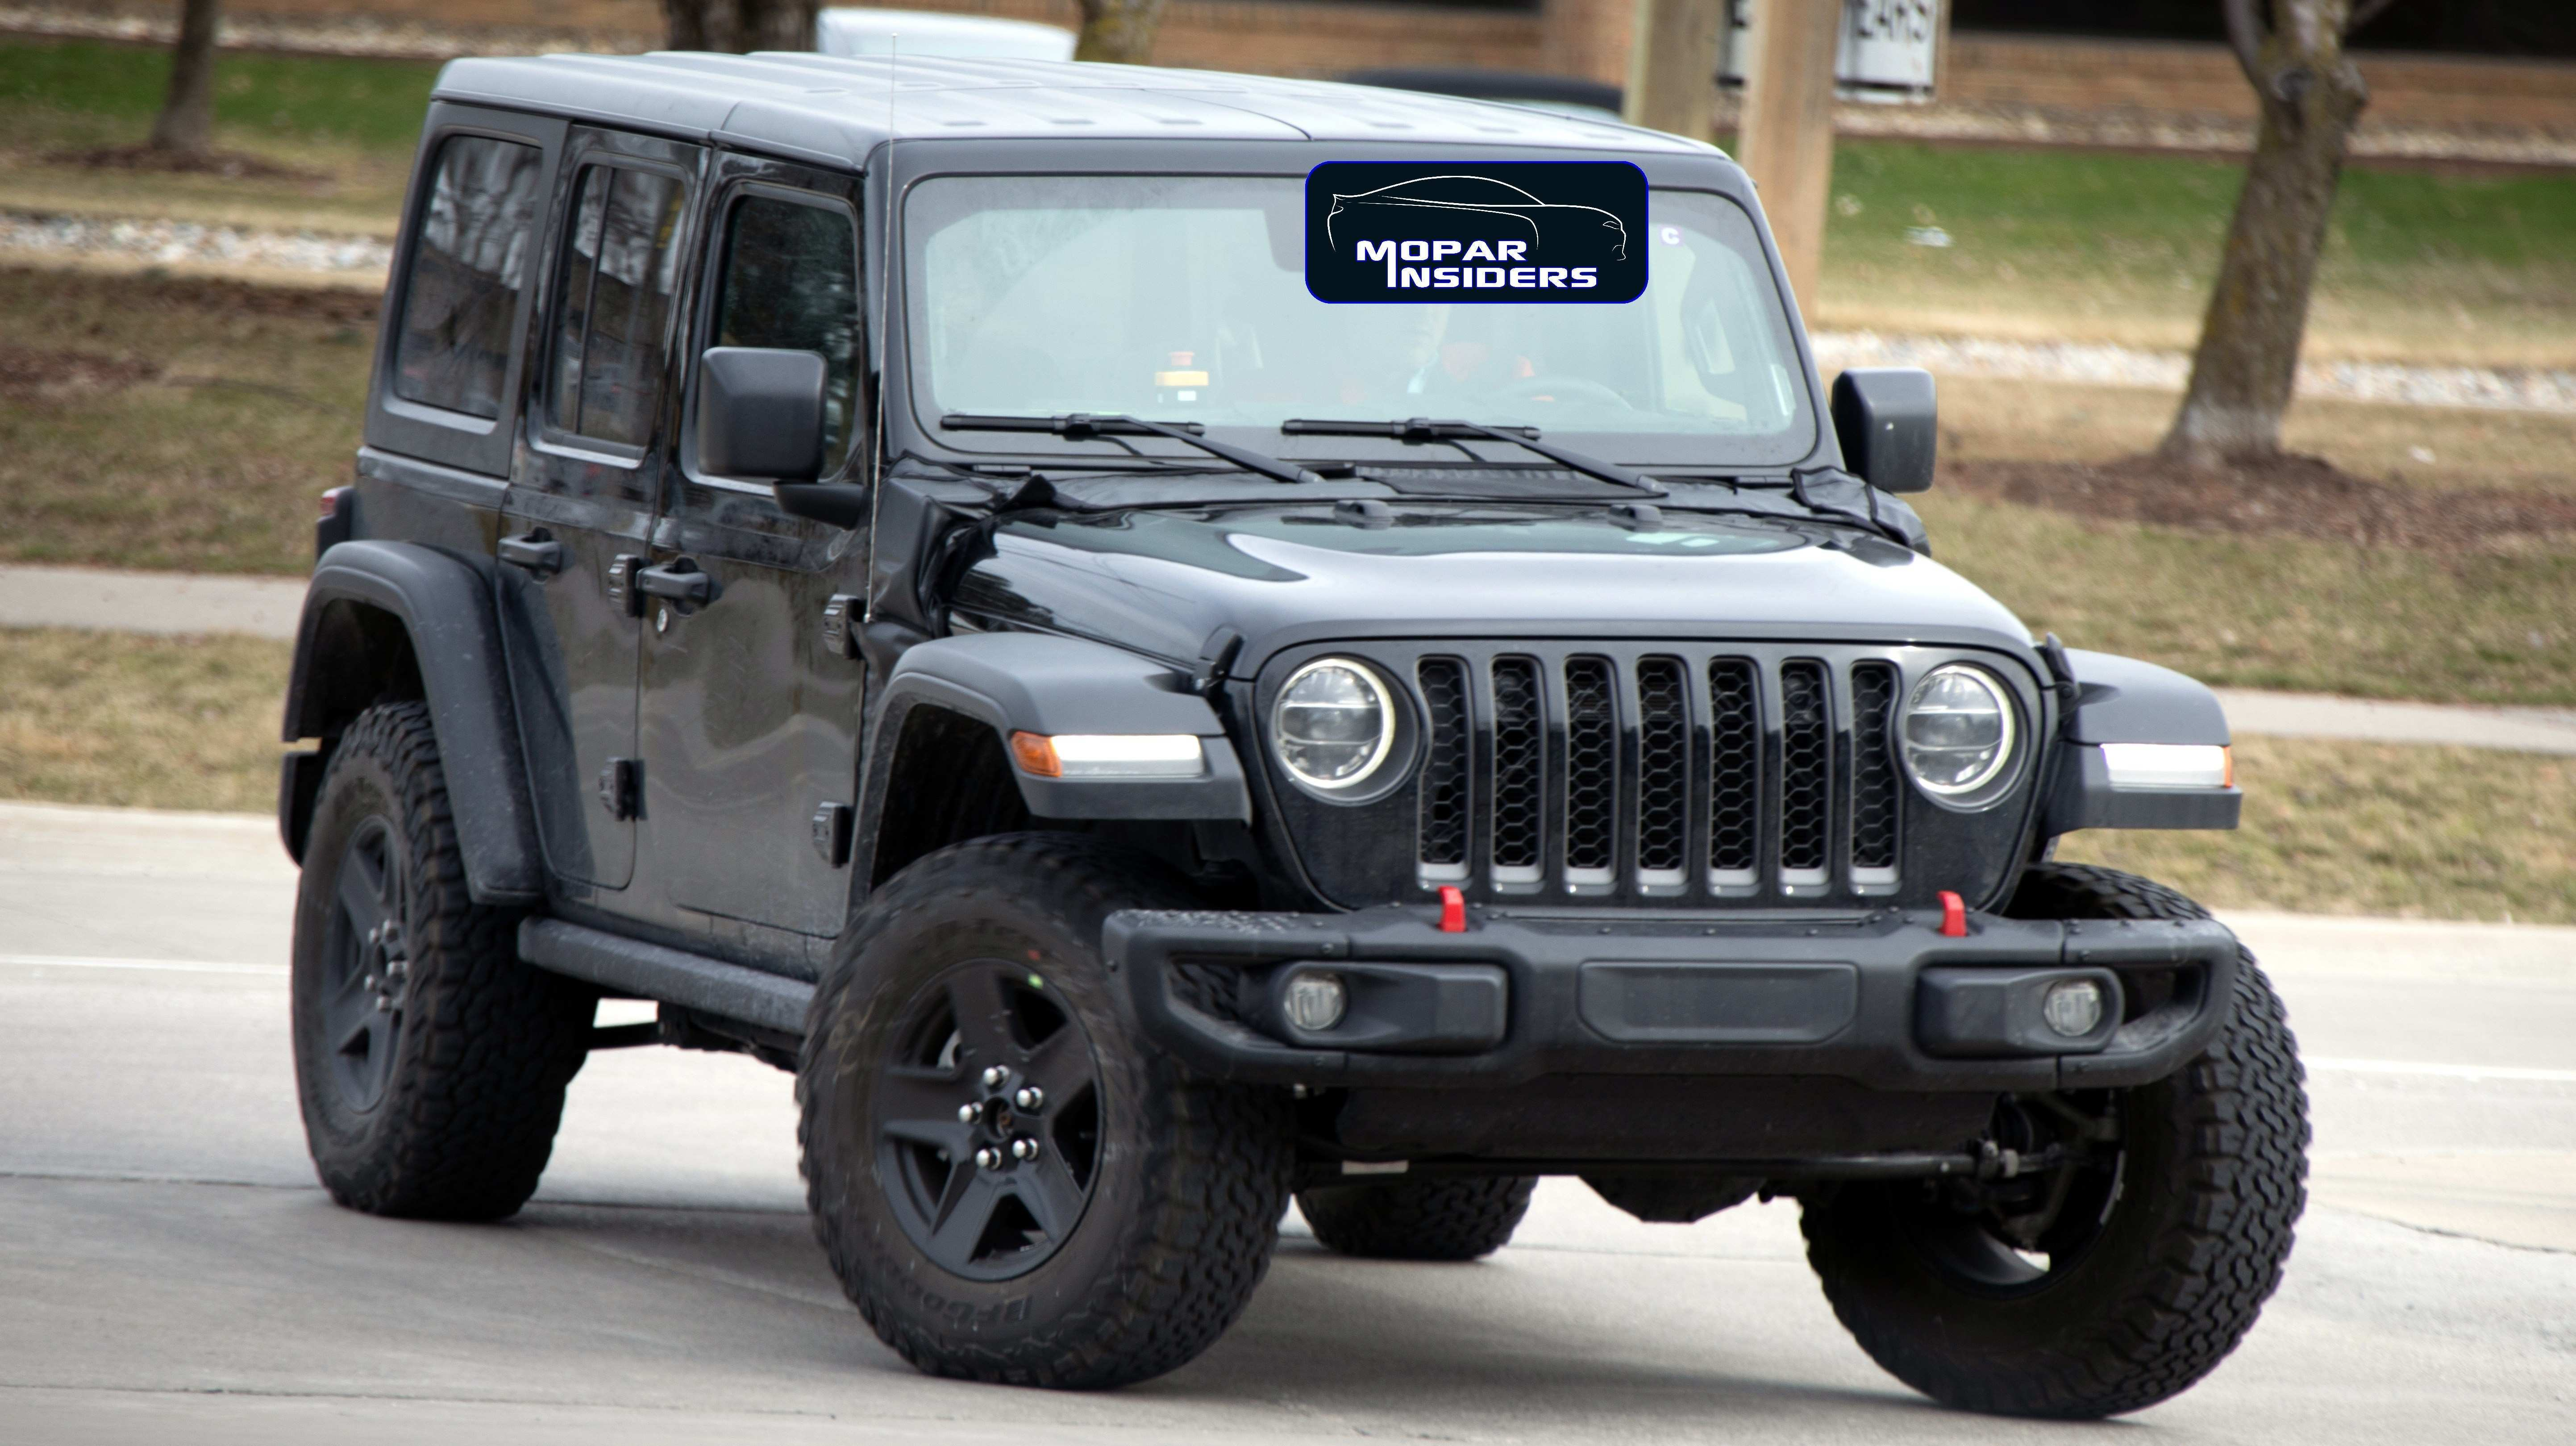 16 Best Jeep Wrangler Rubicon 2020 Overview